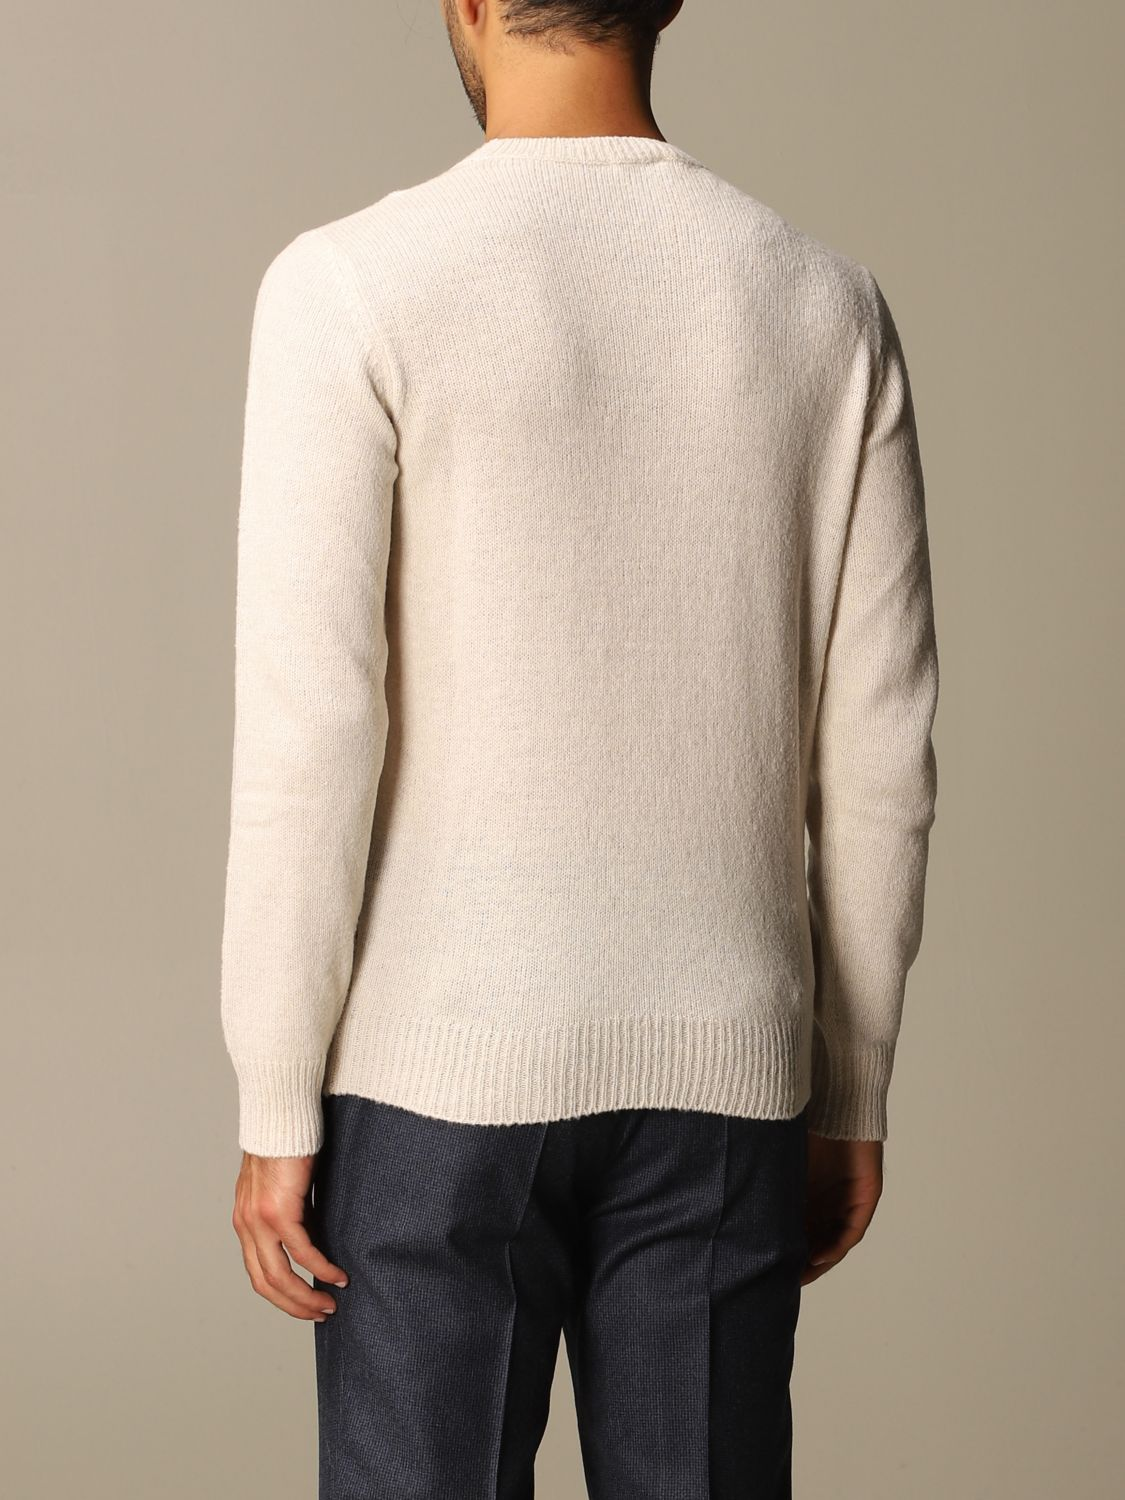 Sweater Brooksfield: Brooksfield crewneck sweater with jacquard writing yellow cream 2